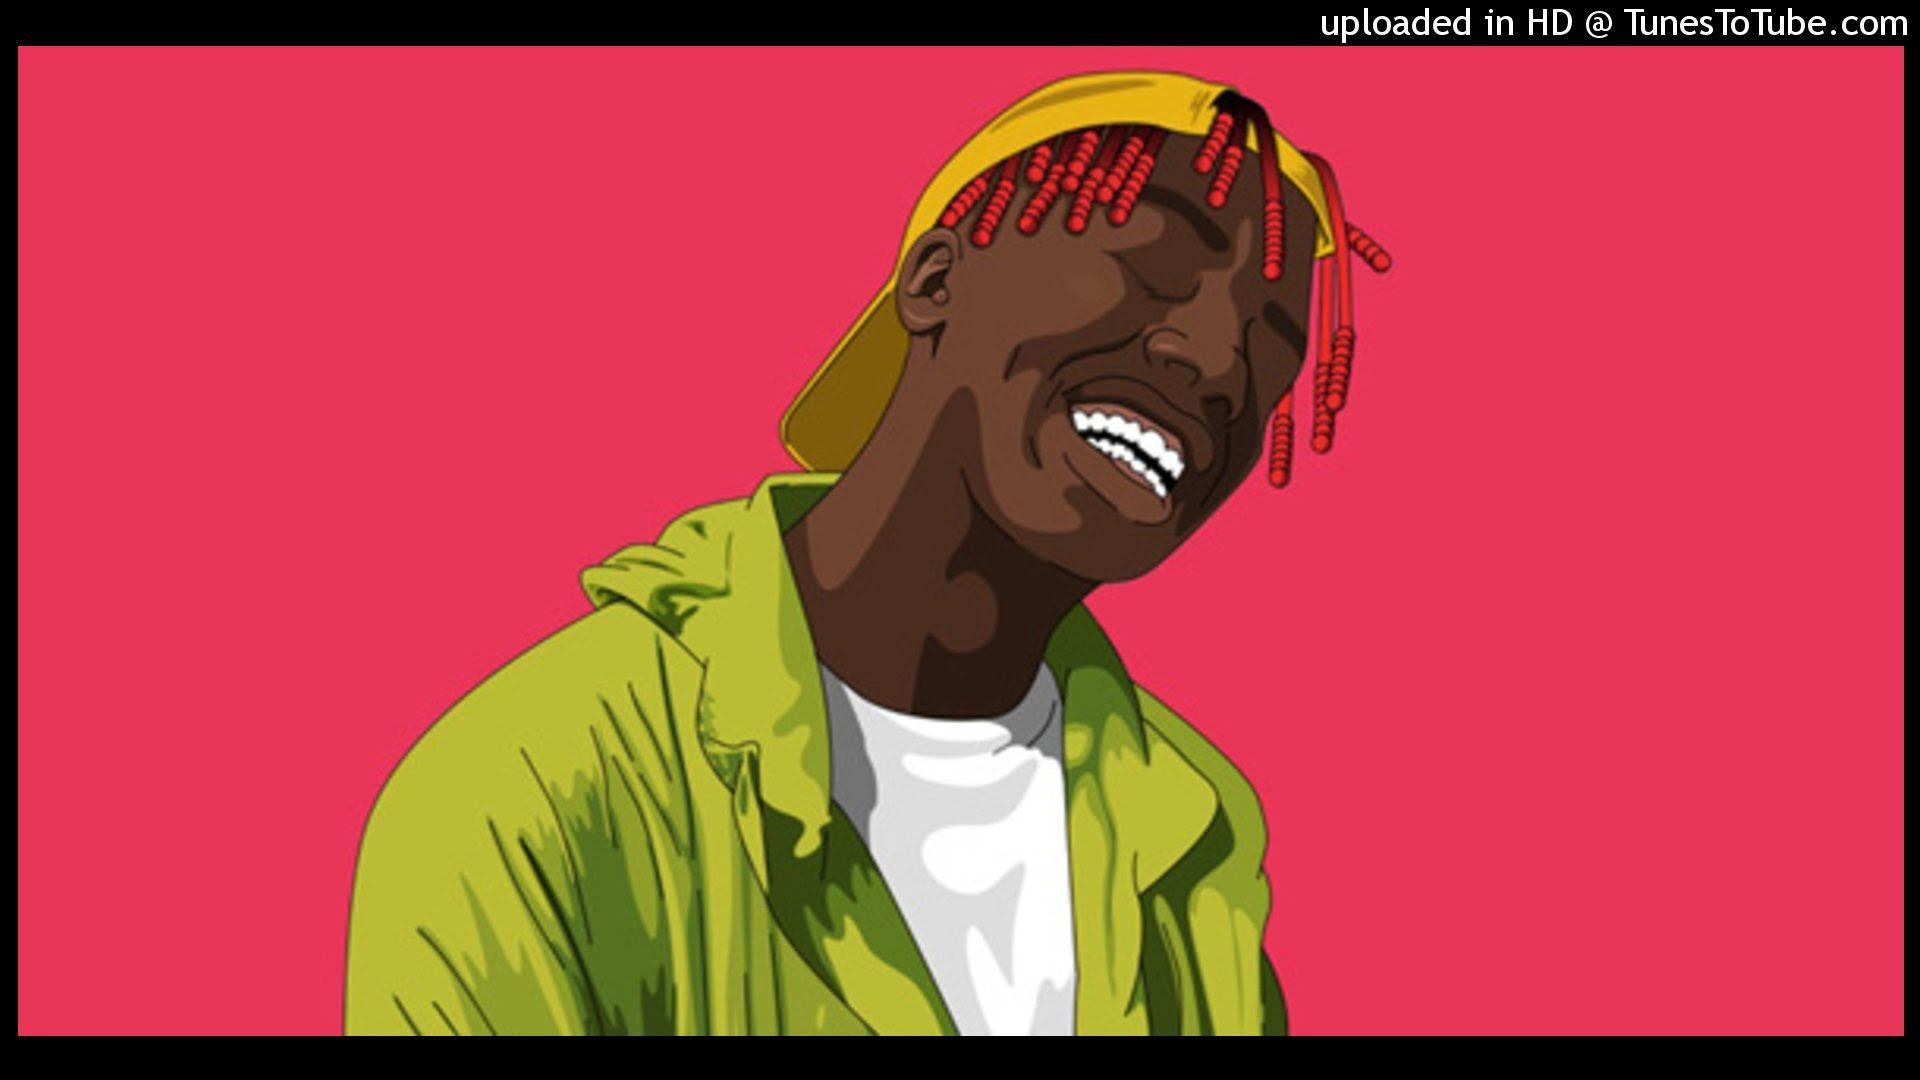 Lil Yachty Cartoon Wallpapers Wallpaper Cave